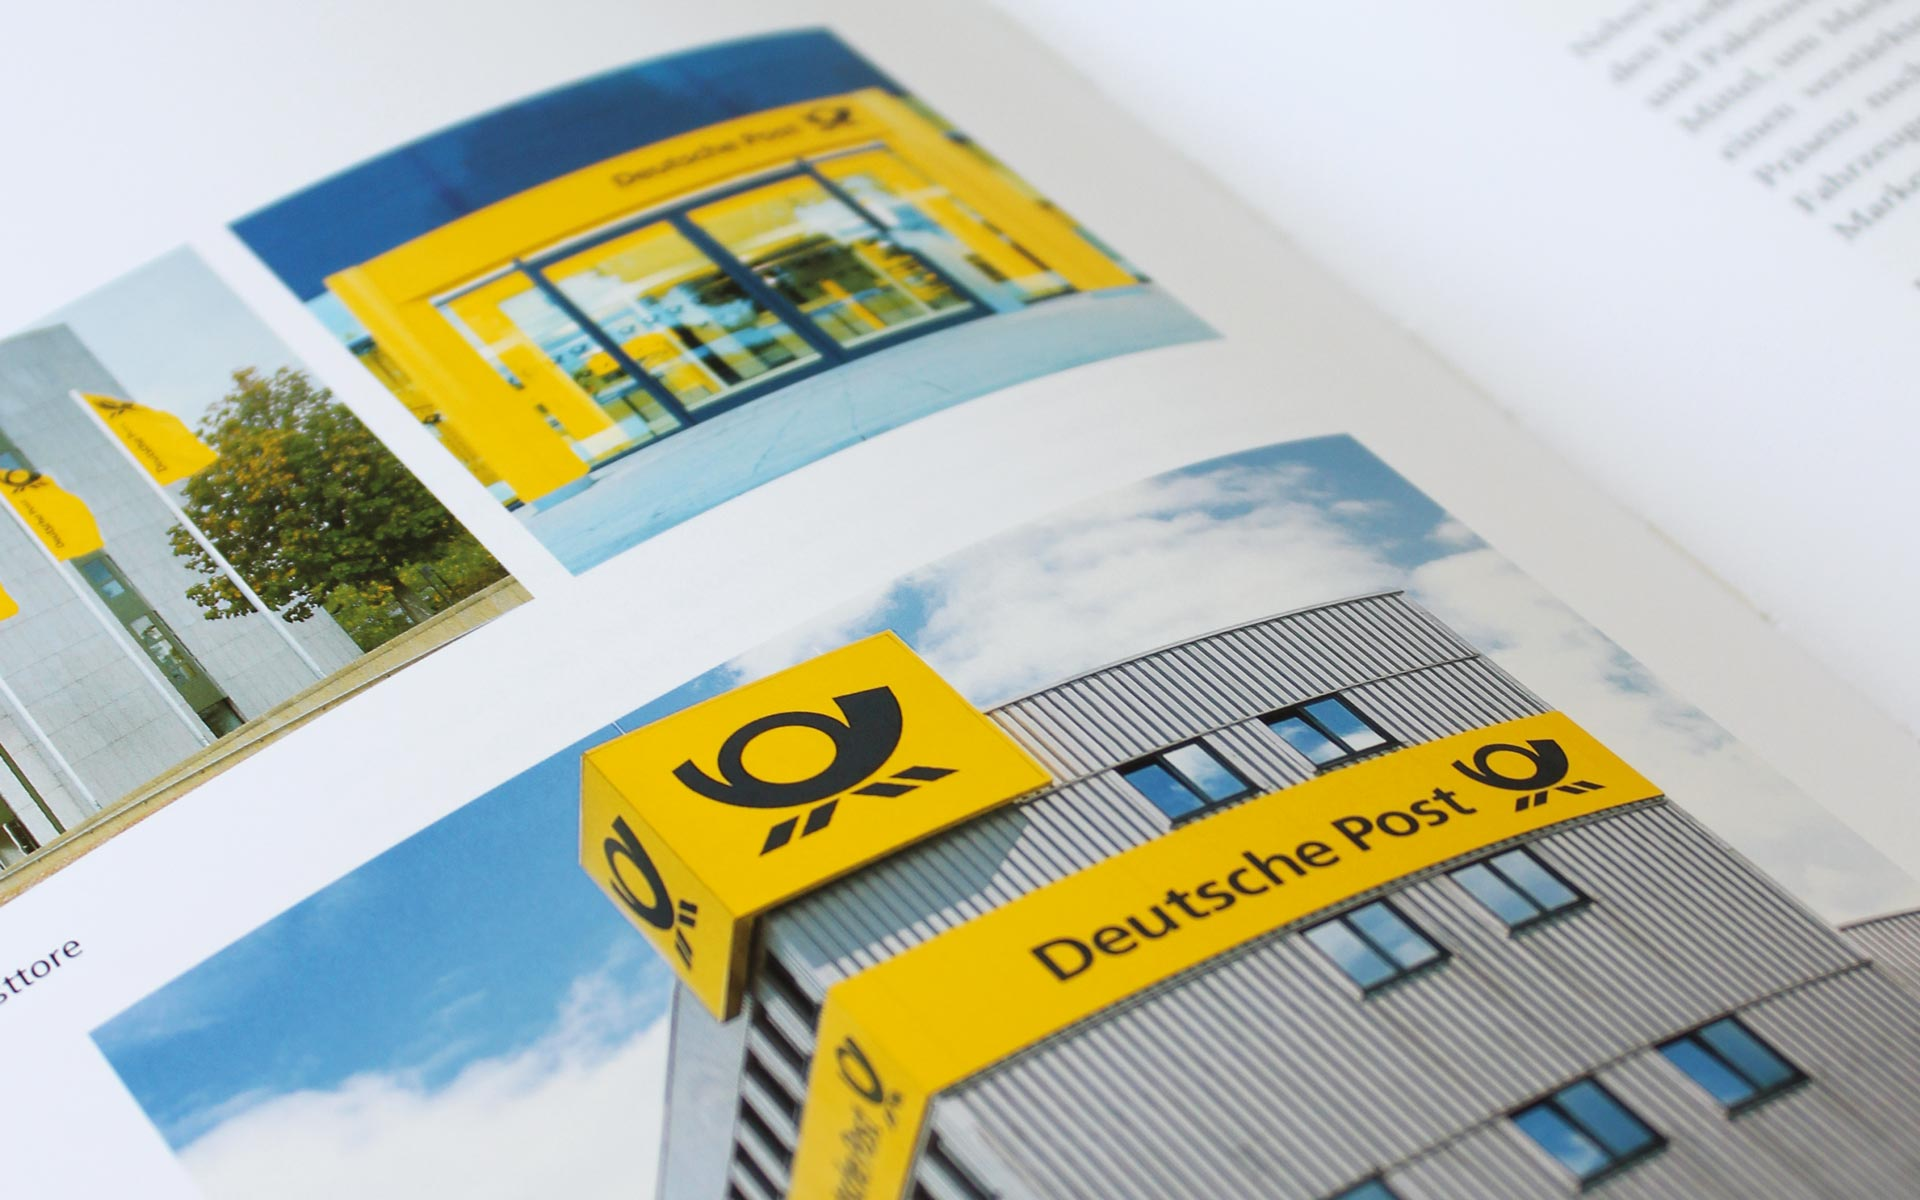 Deutsche Post AG / DHL Corporate Design, Doppelseite im CD-Manual